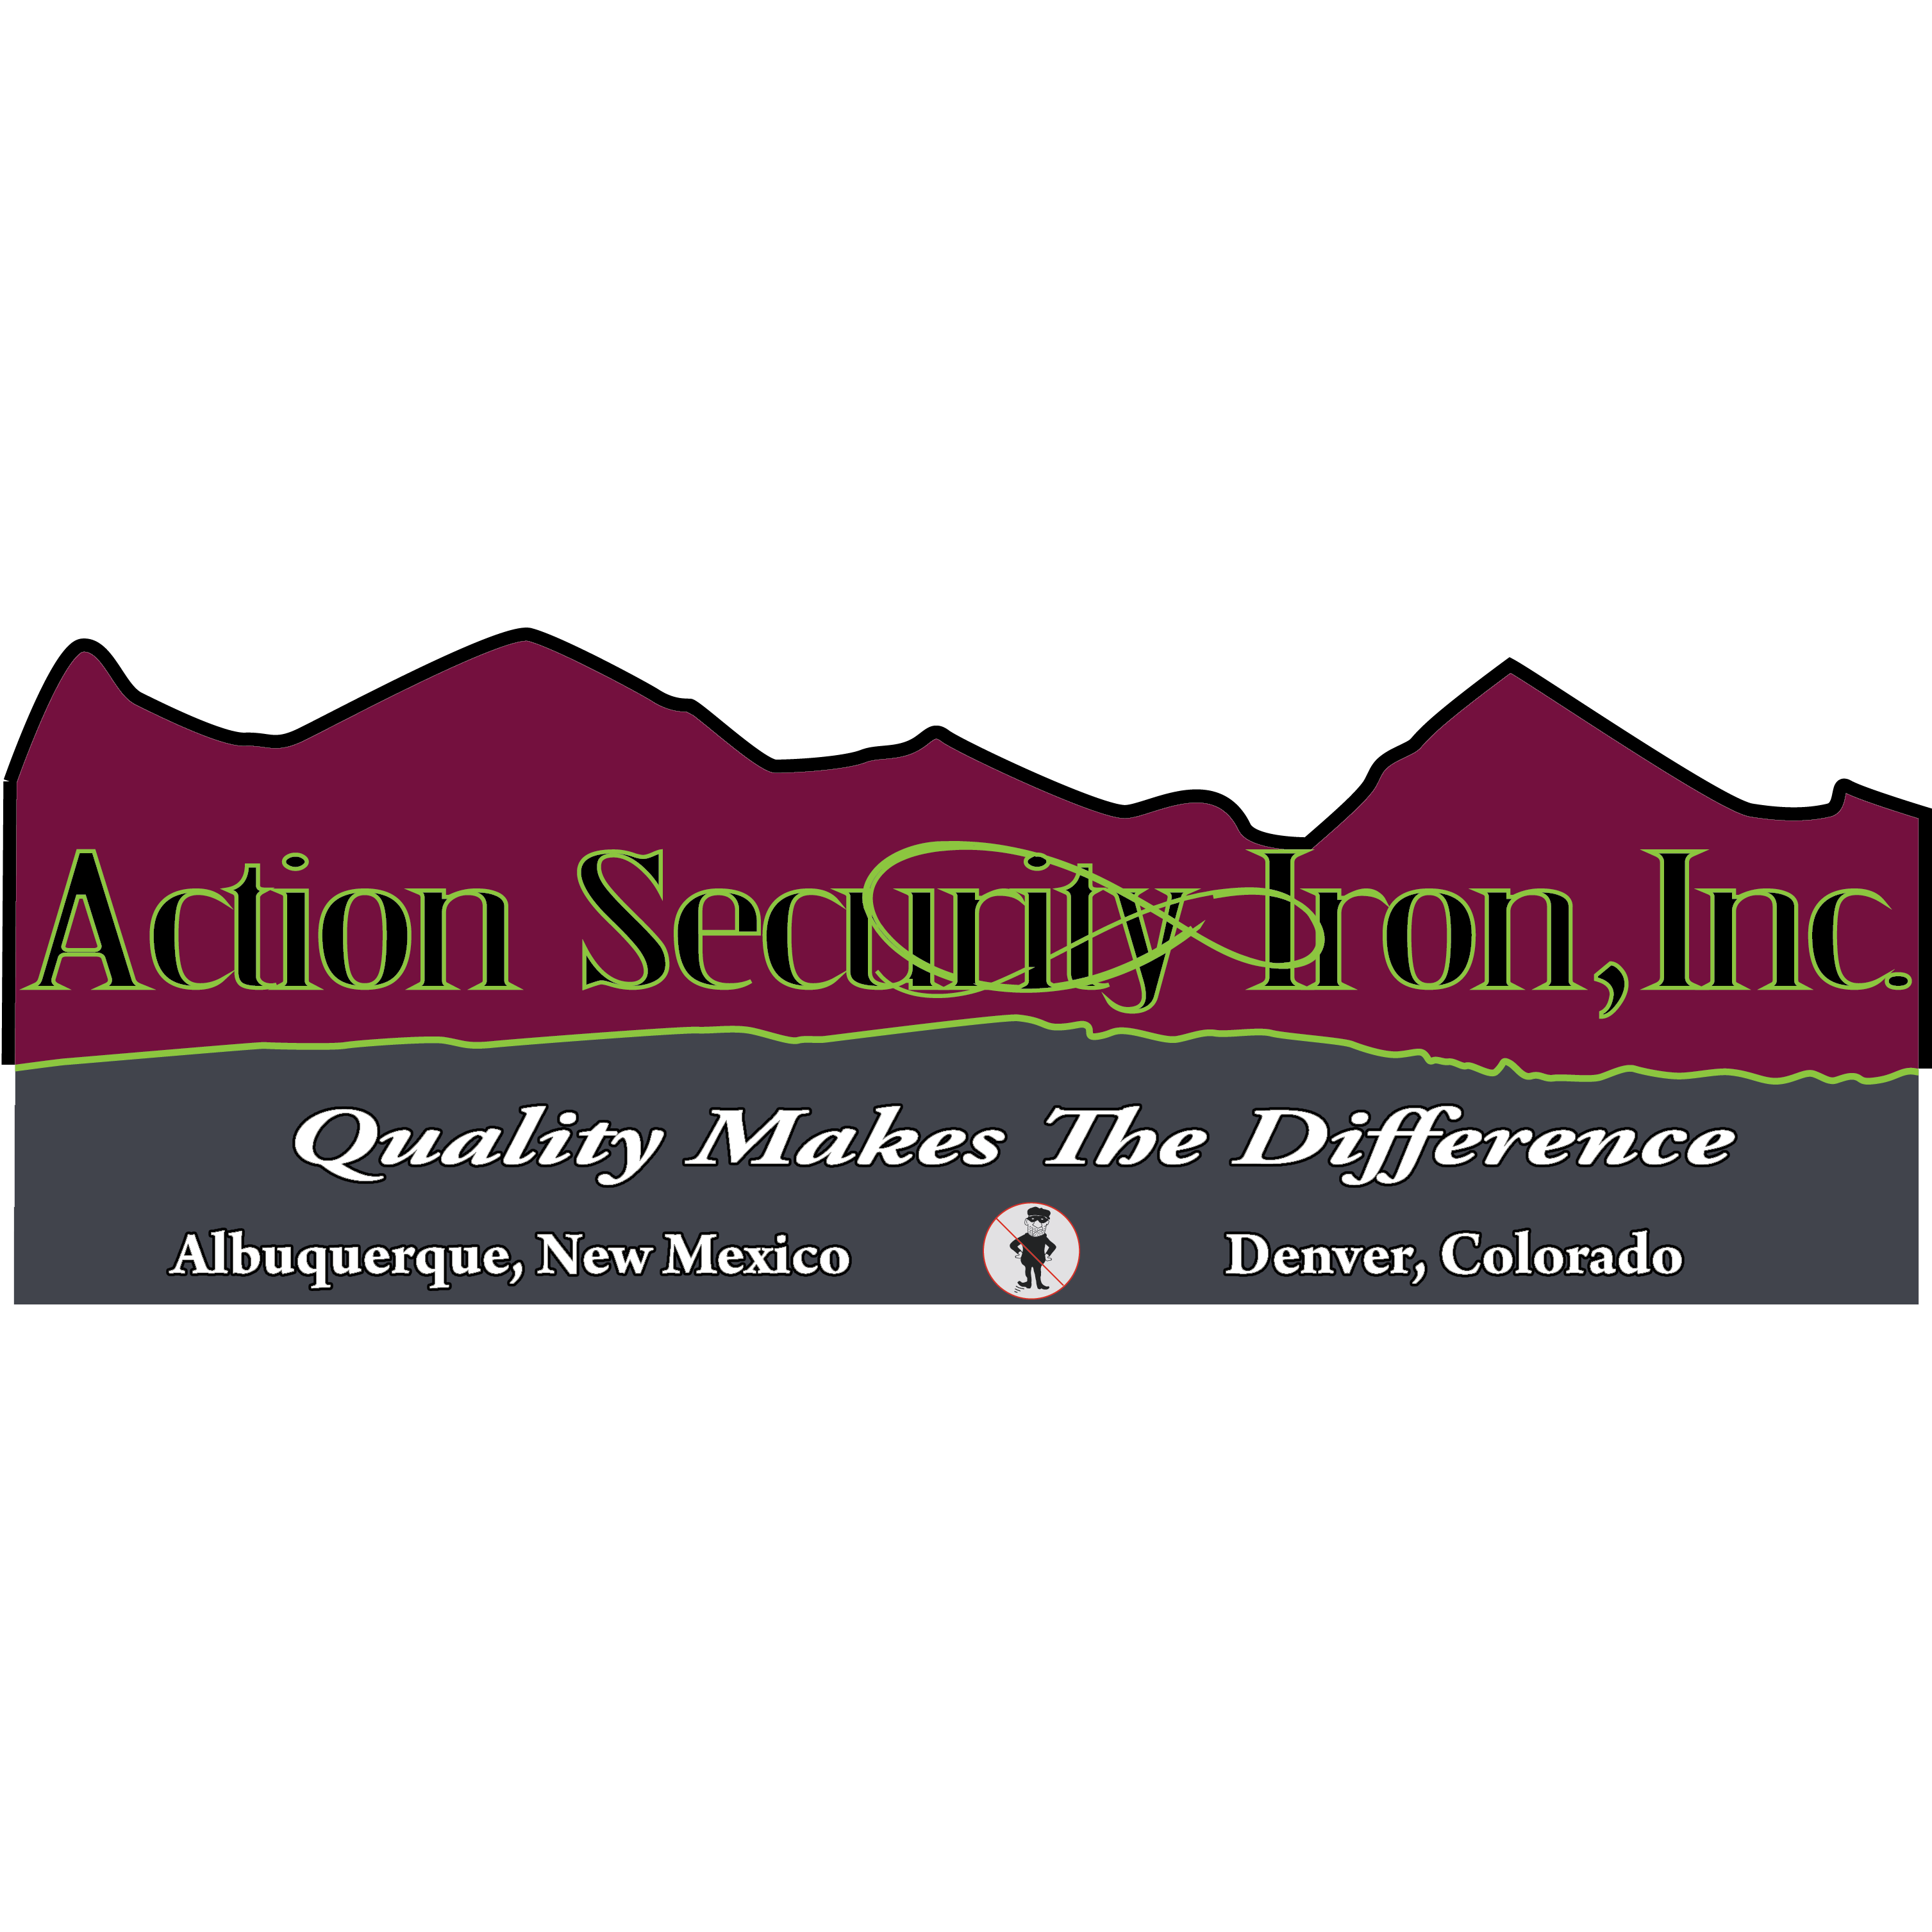 Action Security Iron